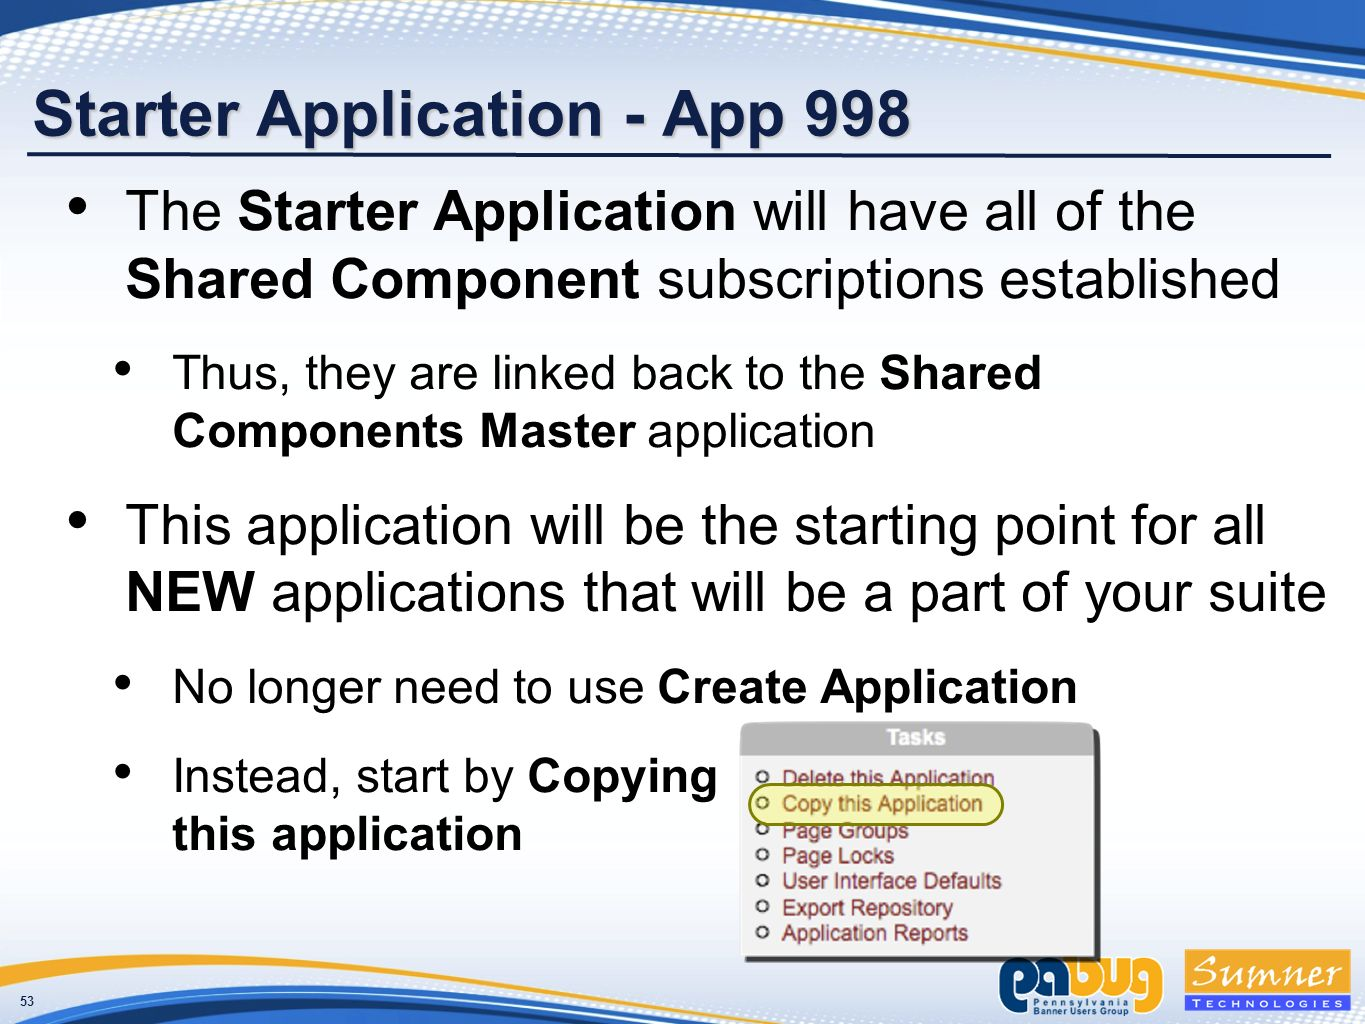 53 Starter Application - App 998 The Starter Application will have all of the Shared Component subscriptions established Thus, they are linked back to the Shared Components Master application This application will be the starting point for all NEW applications that will be a part of your suite No longer need to use Create Application Instead, start by Copying this application